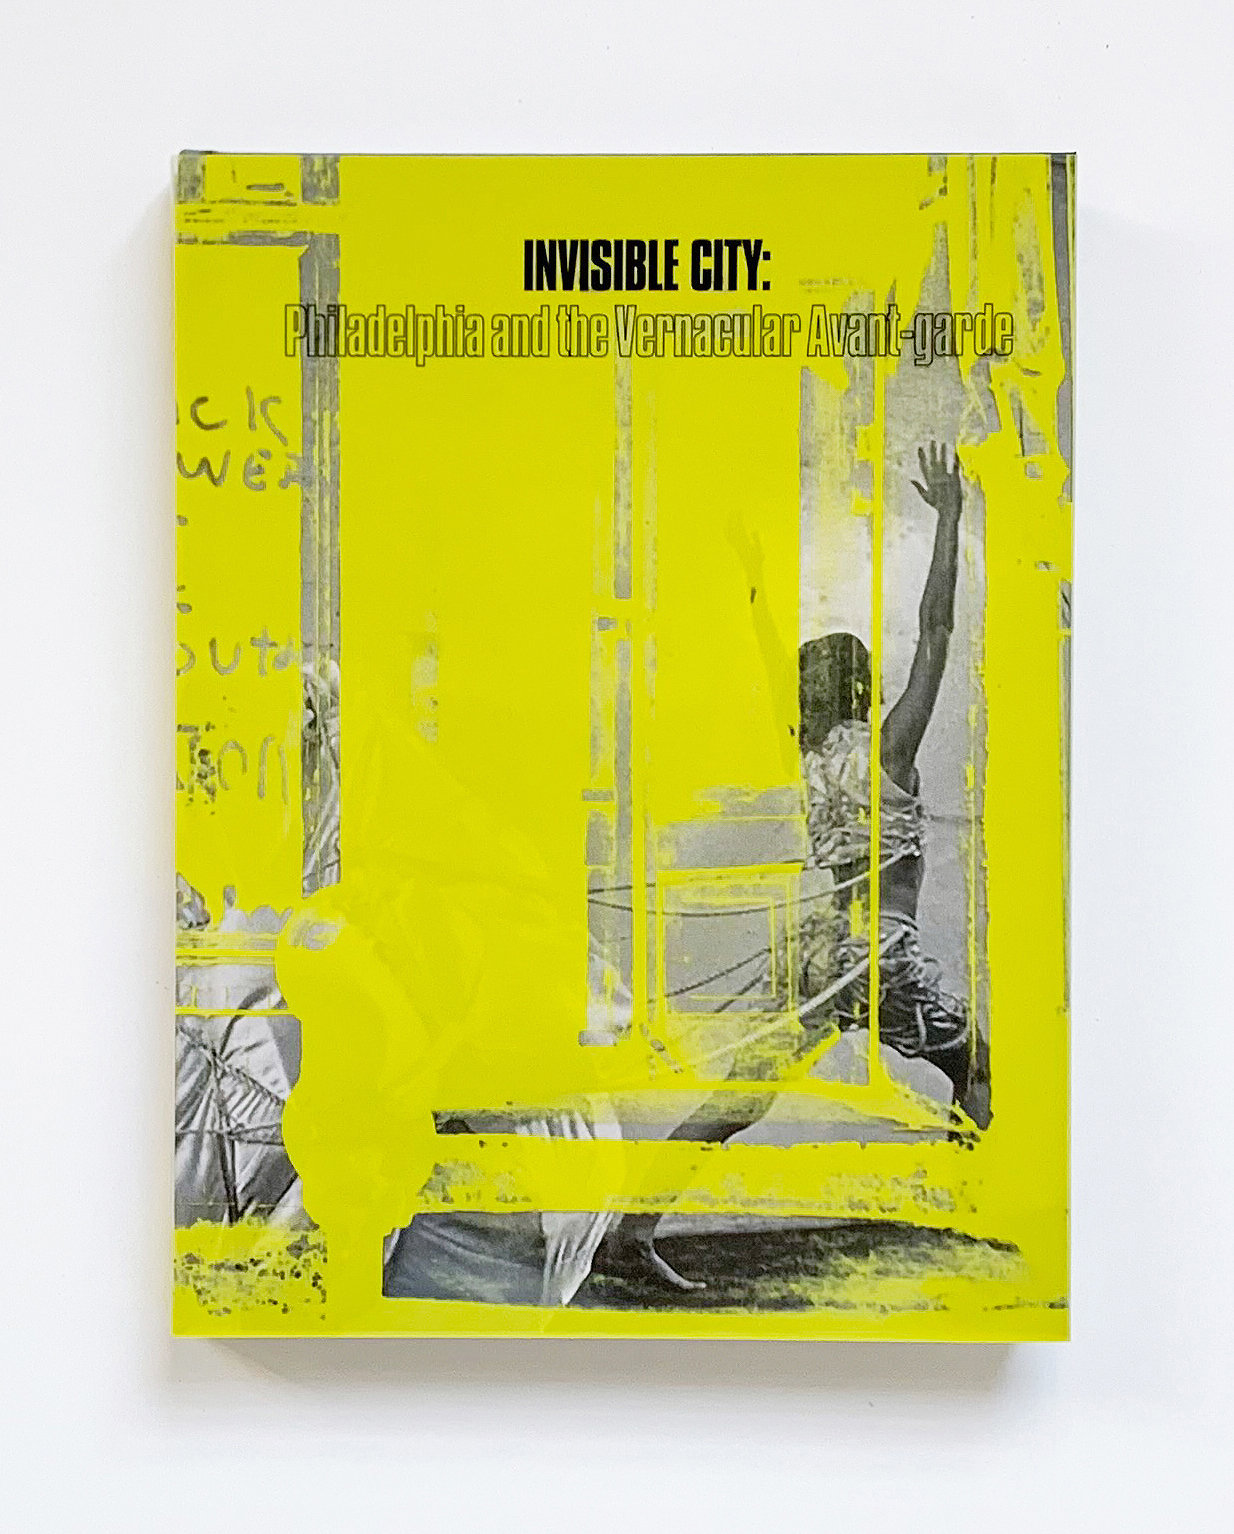 Invisible City catalog cover with neon yellow overlay